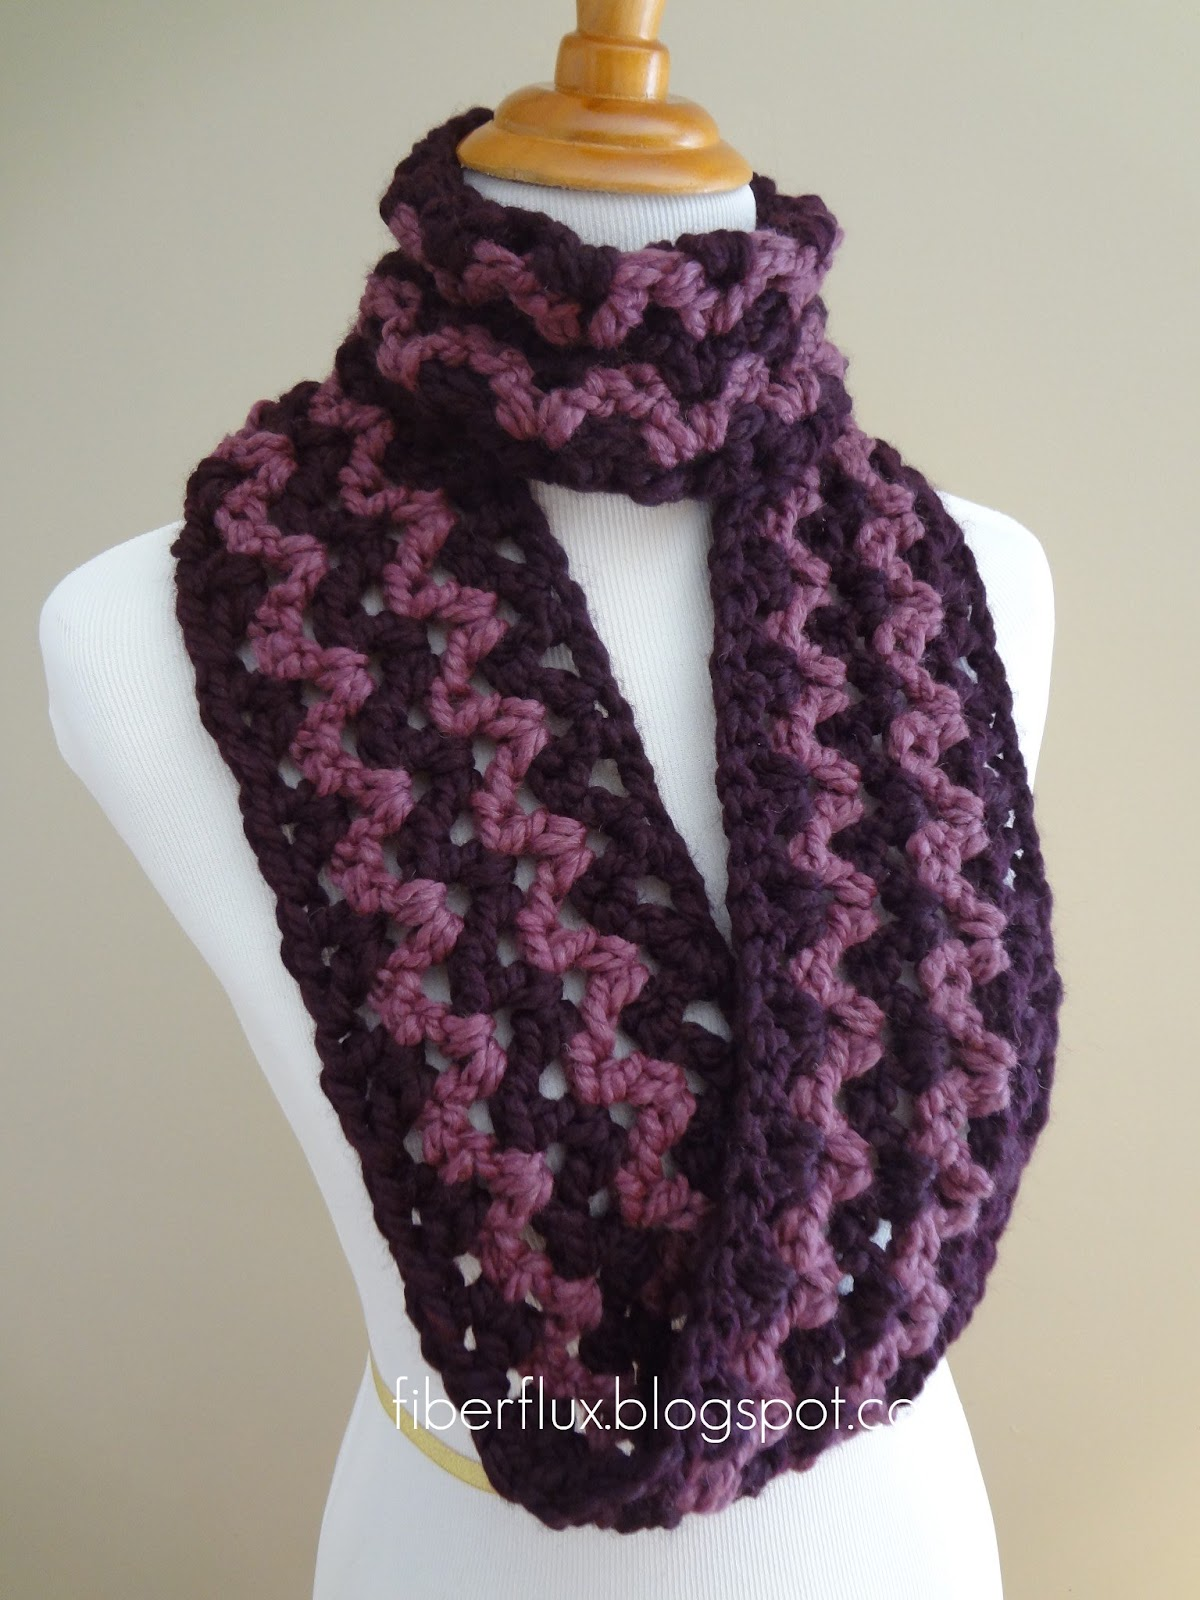 Free Crochet Patterns For Lightweight Scarves : Fiber Flux: Free Crochet Pattern...Pavement Infinity Scarf!